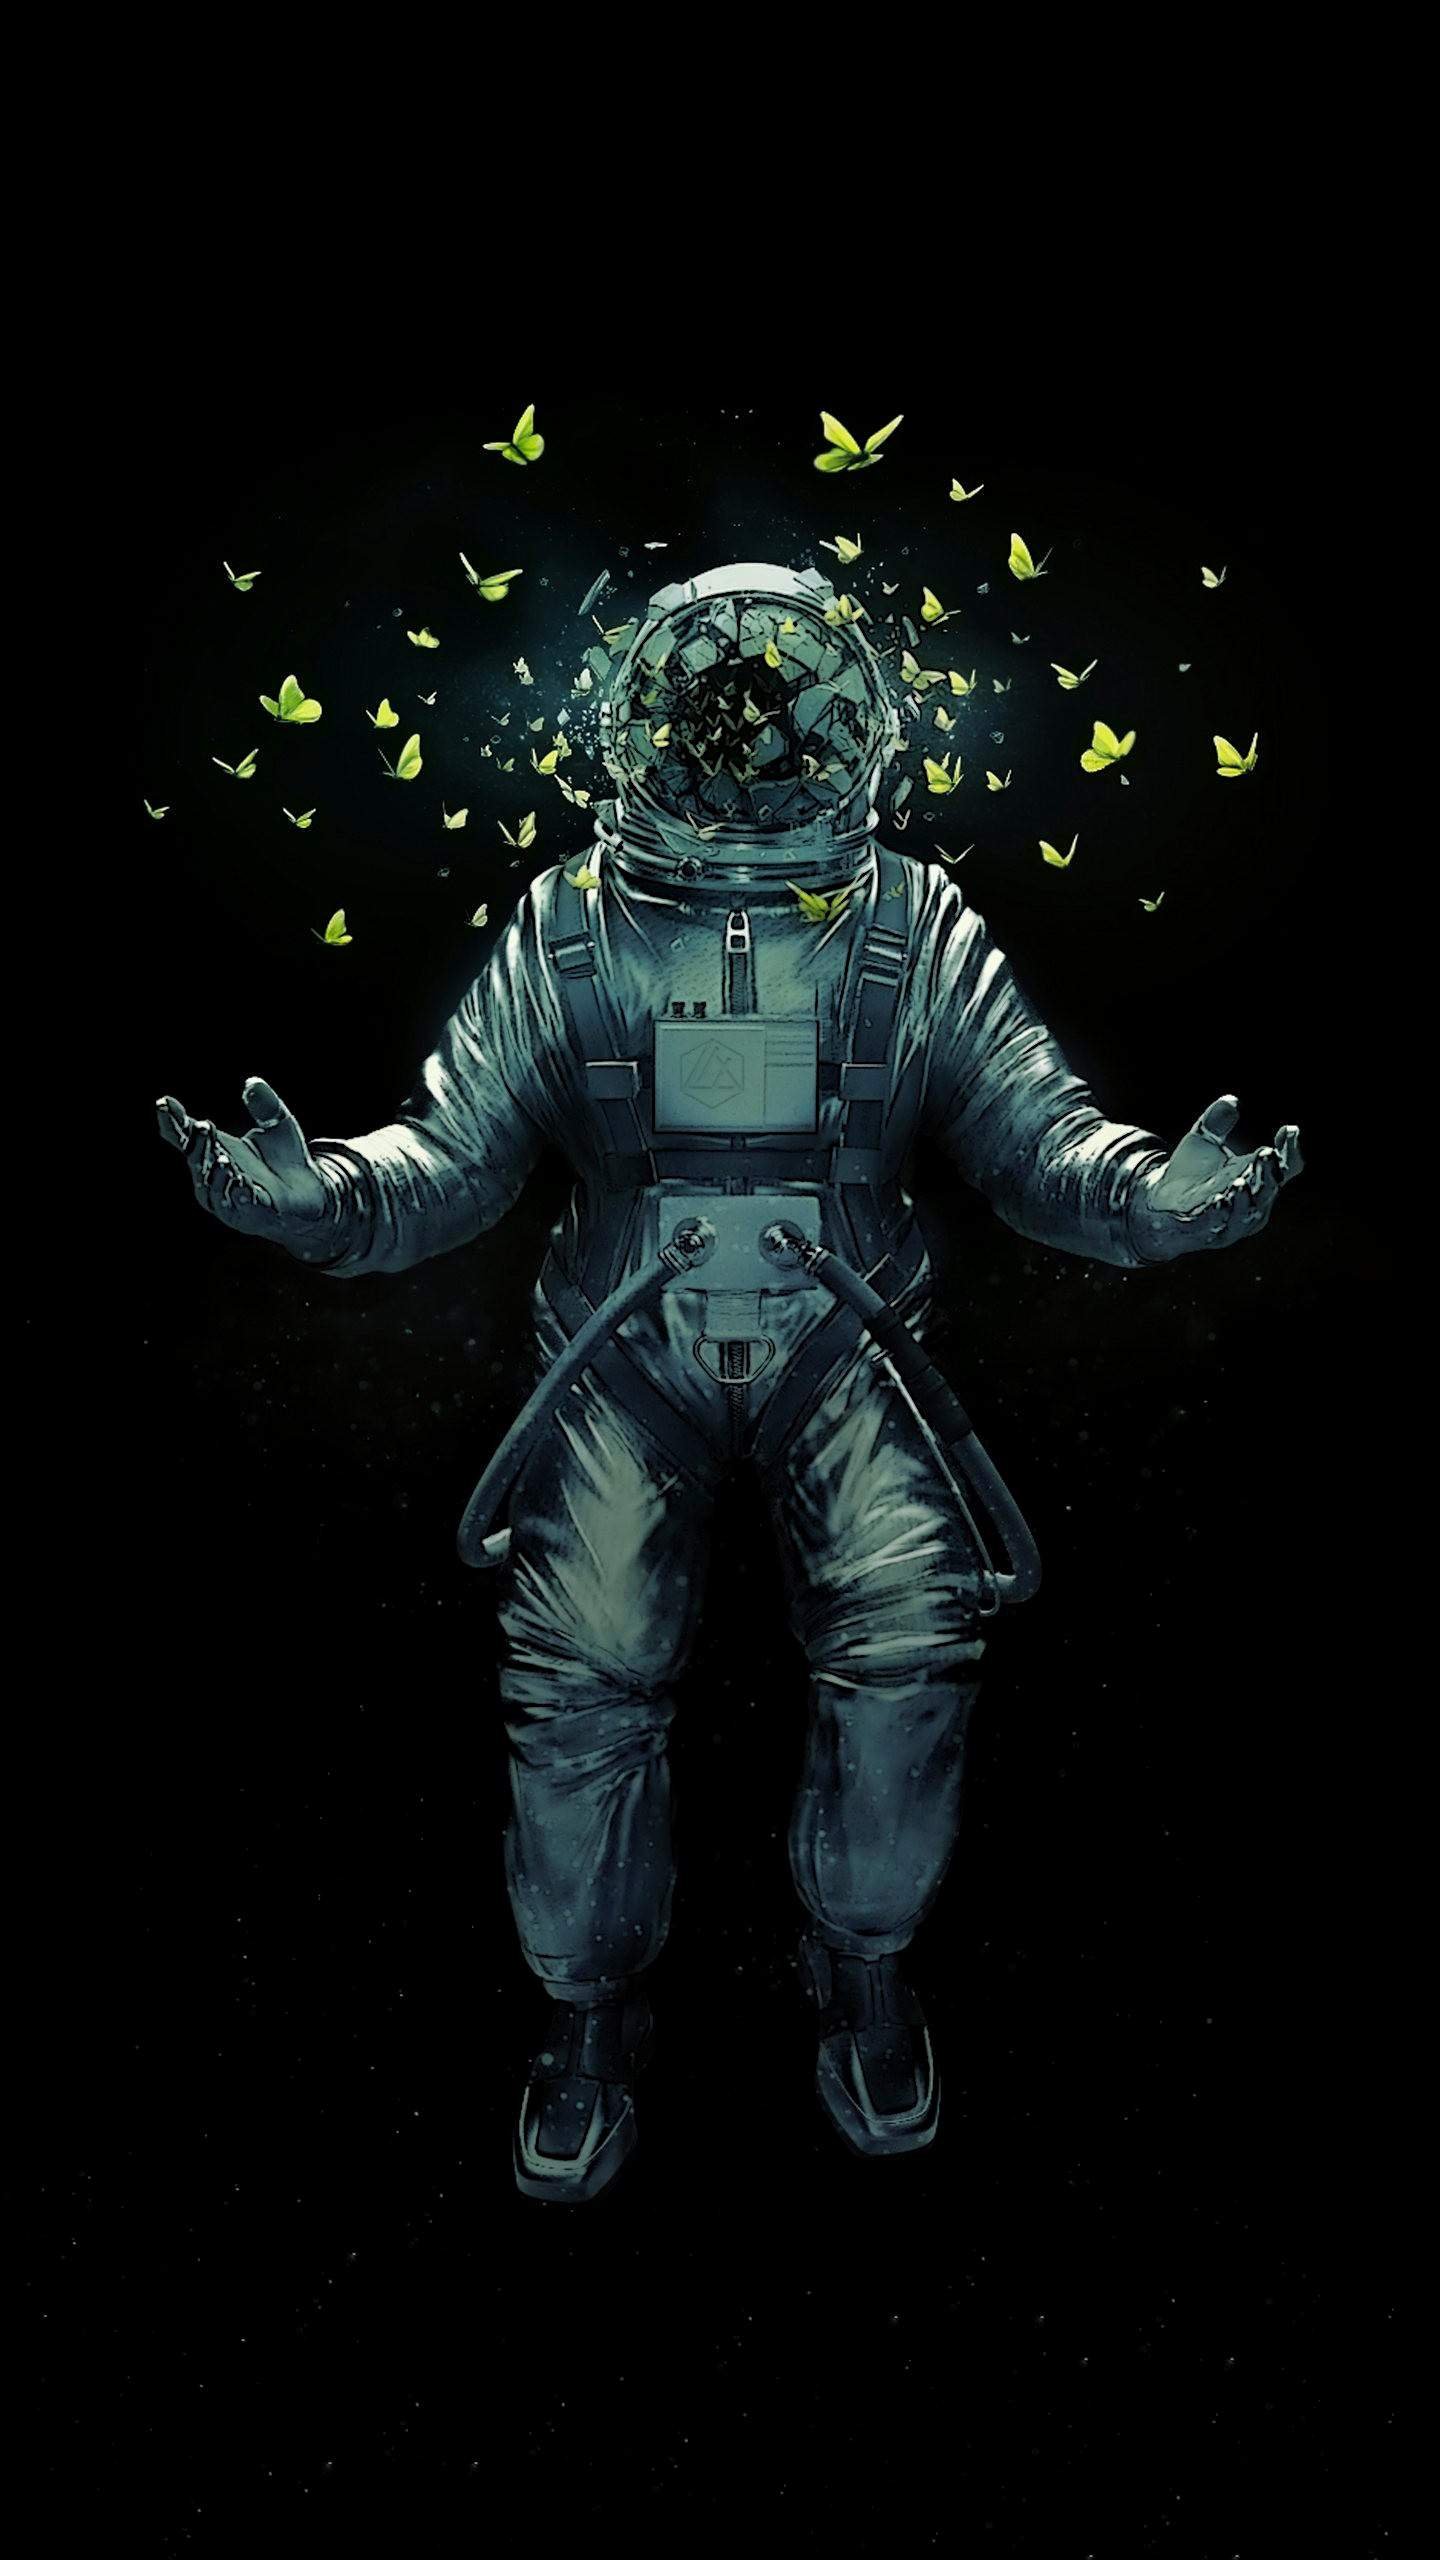 astronaut spacewalk for android - HD800×1200